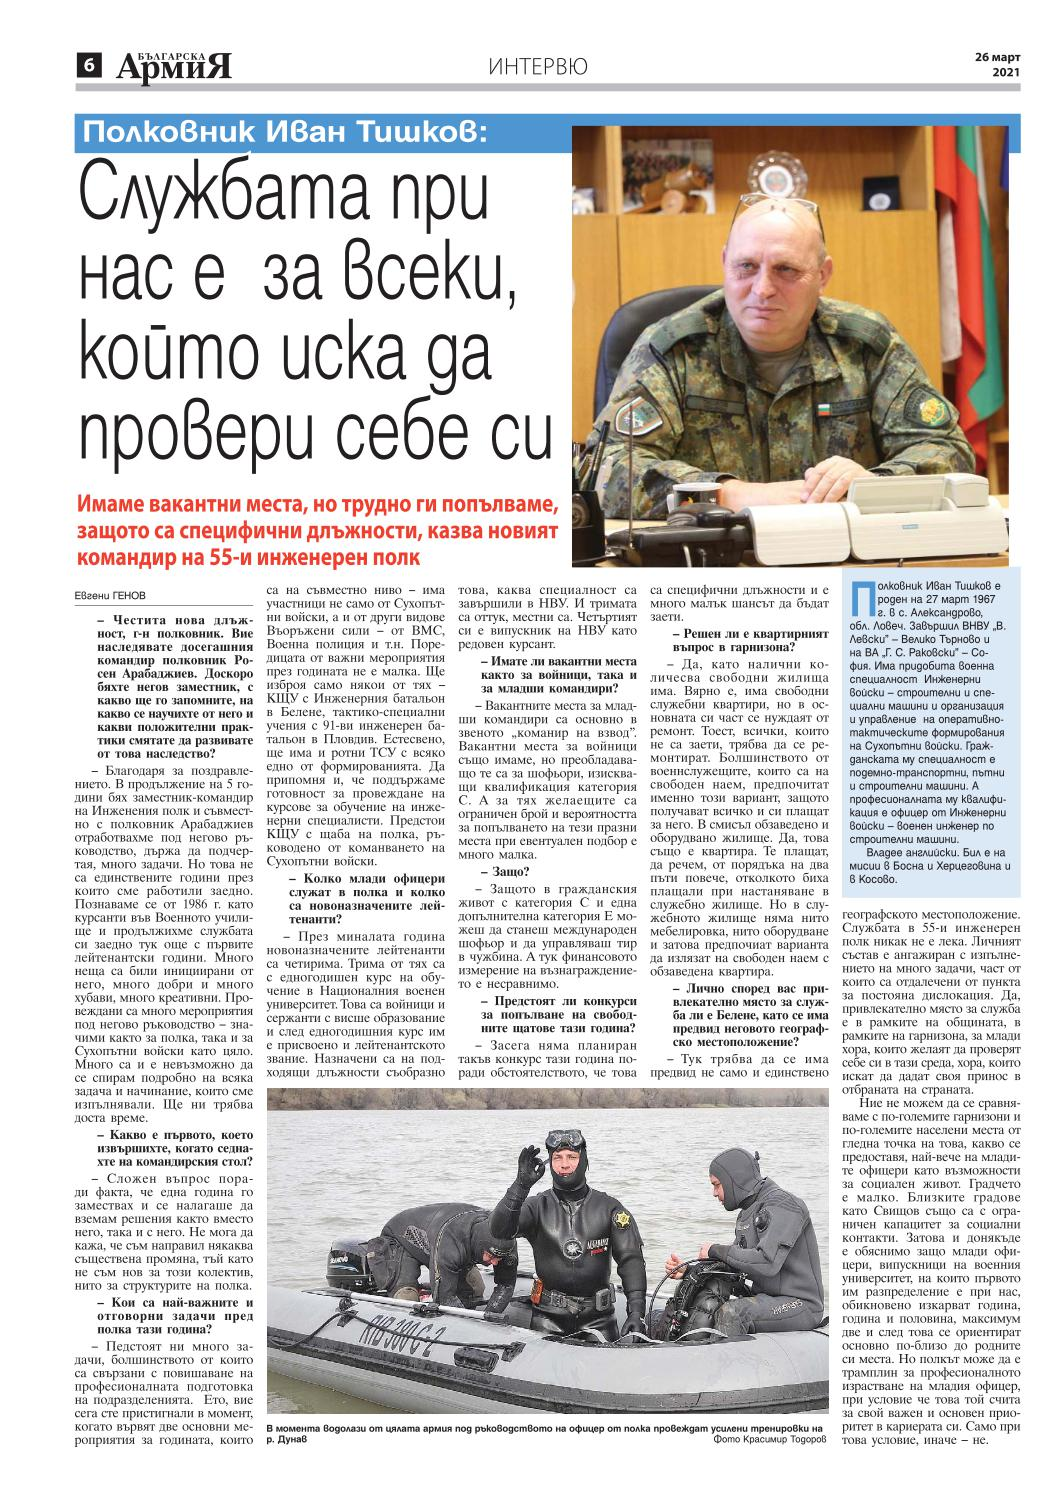 https://armymedia.bg/wp-content/uploads/2021/03/06.page1_-154.jpg